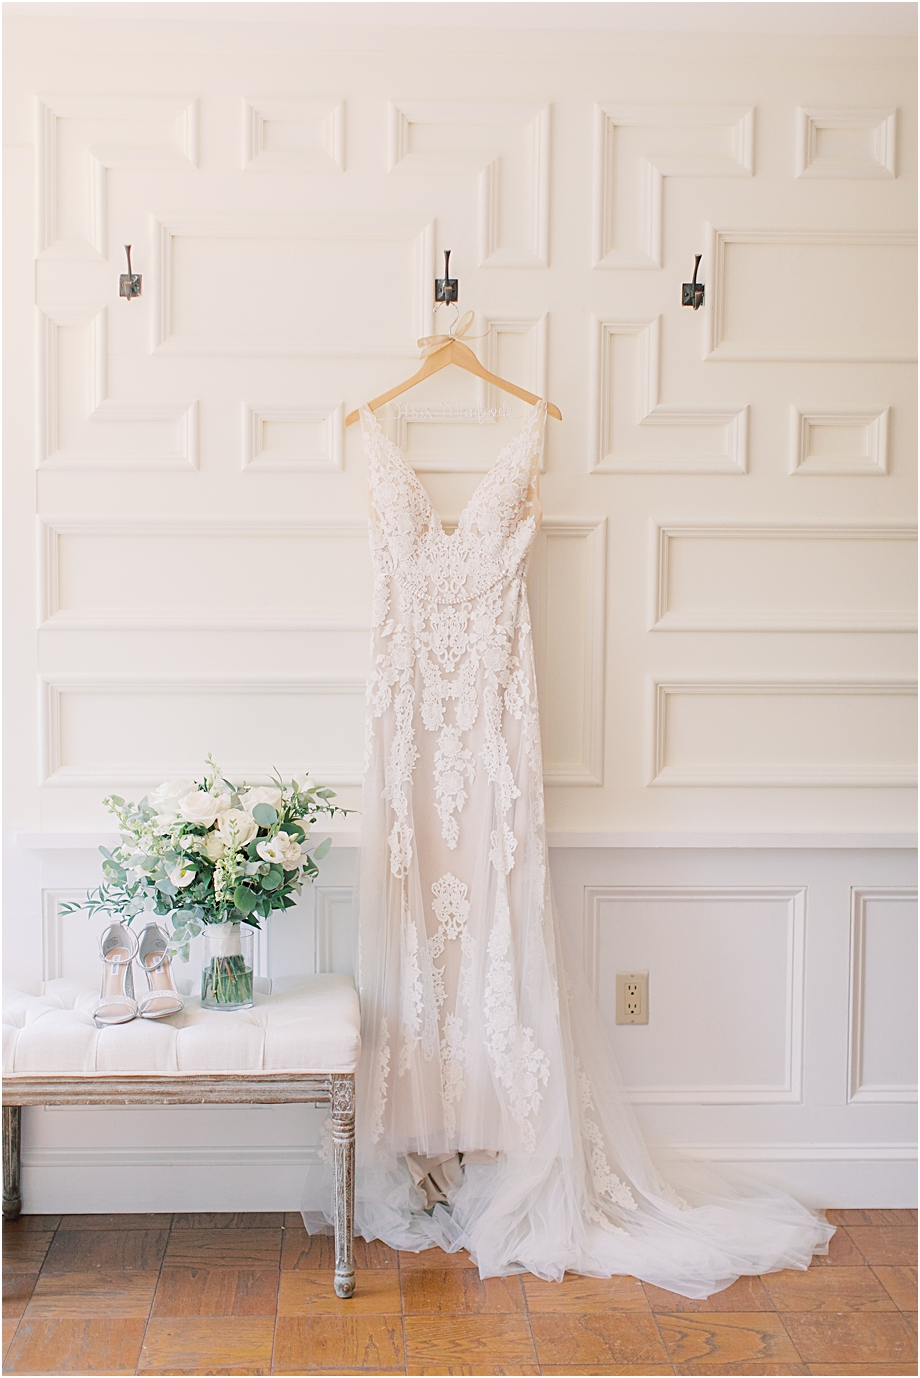 wedding dress hanging | Hotel Du Village Wedding